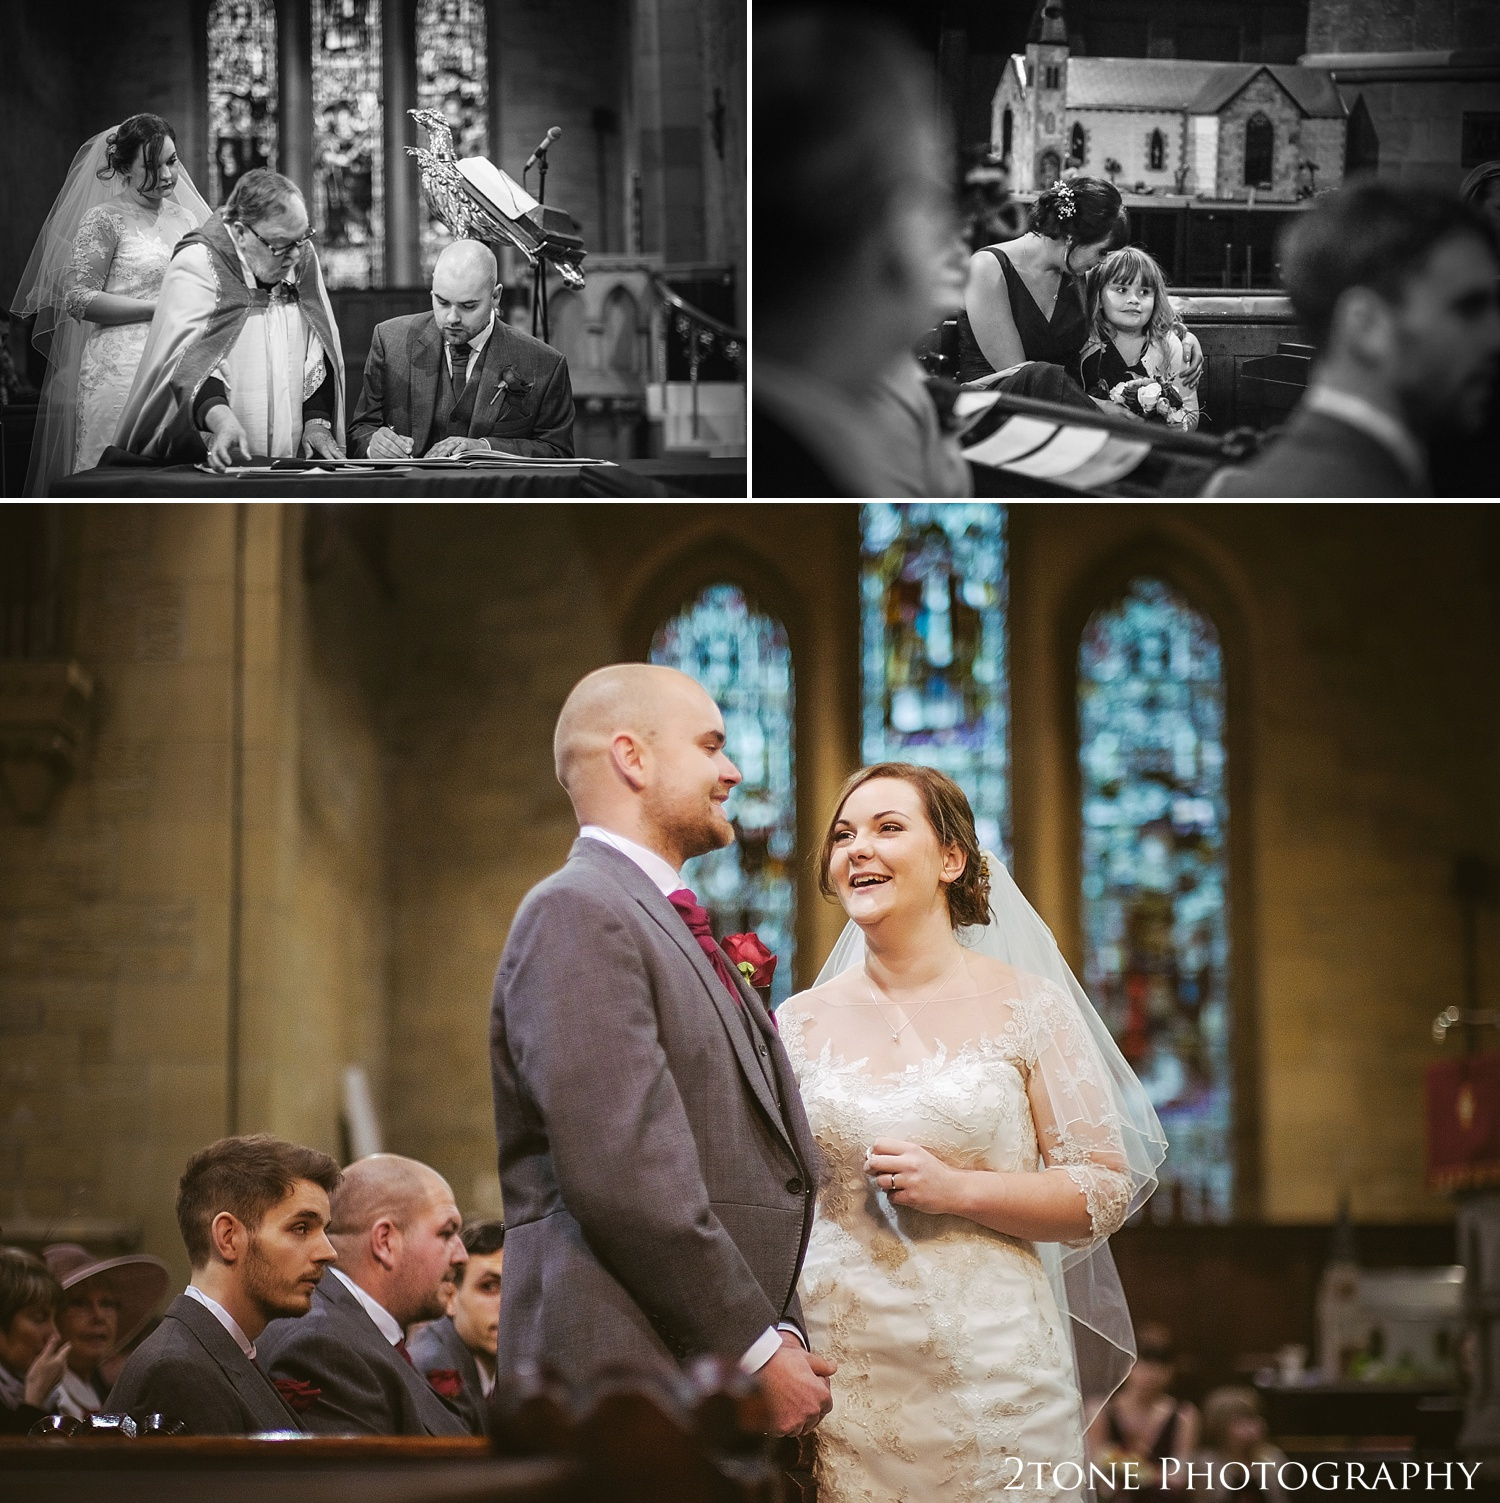 Weddings at St Helen's church, Low Fell Gateshead by wedding photographers 2tone Photography www.2tonephotography.co.uk